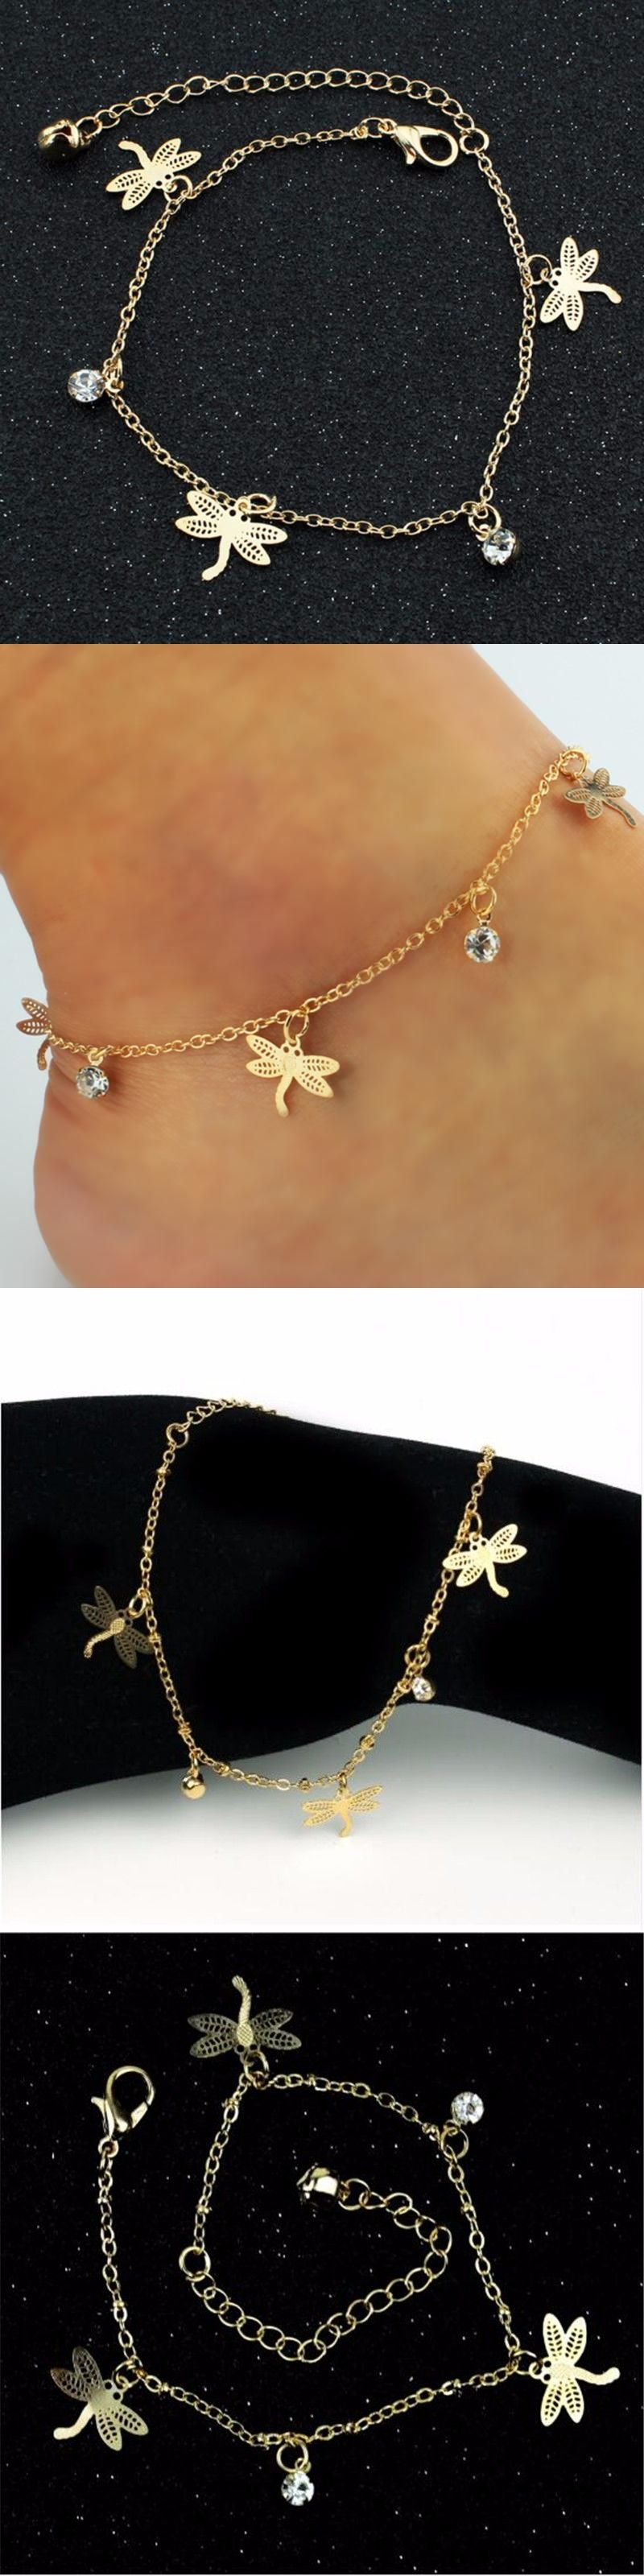 shoes bracelet jewelry in anklets accessories color designer from pendant turkish anklet ankle bracelets girls foot decoration sexy puppy tow item feet women